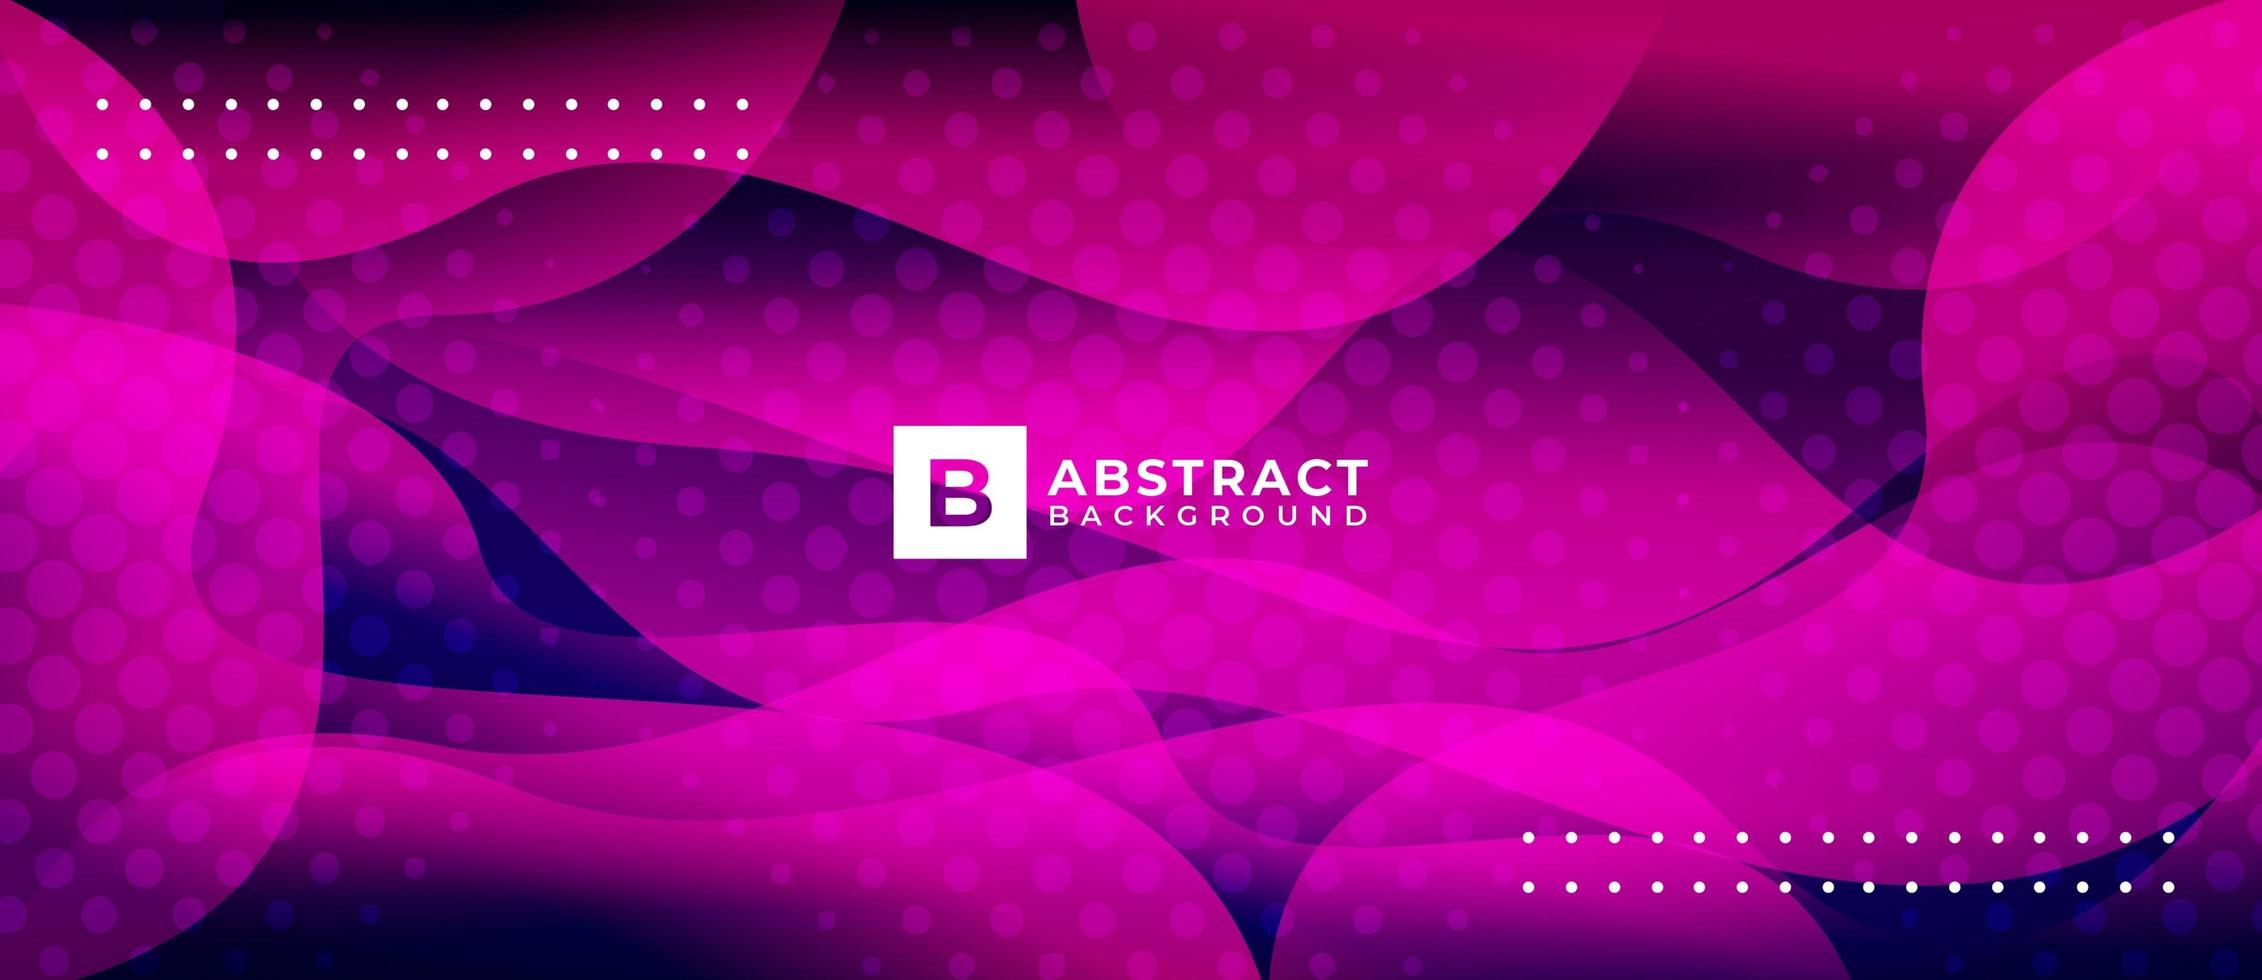 Neon Pink Curves Wave Shape Background vector